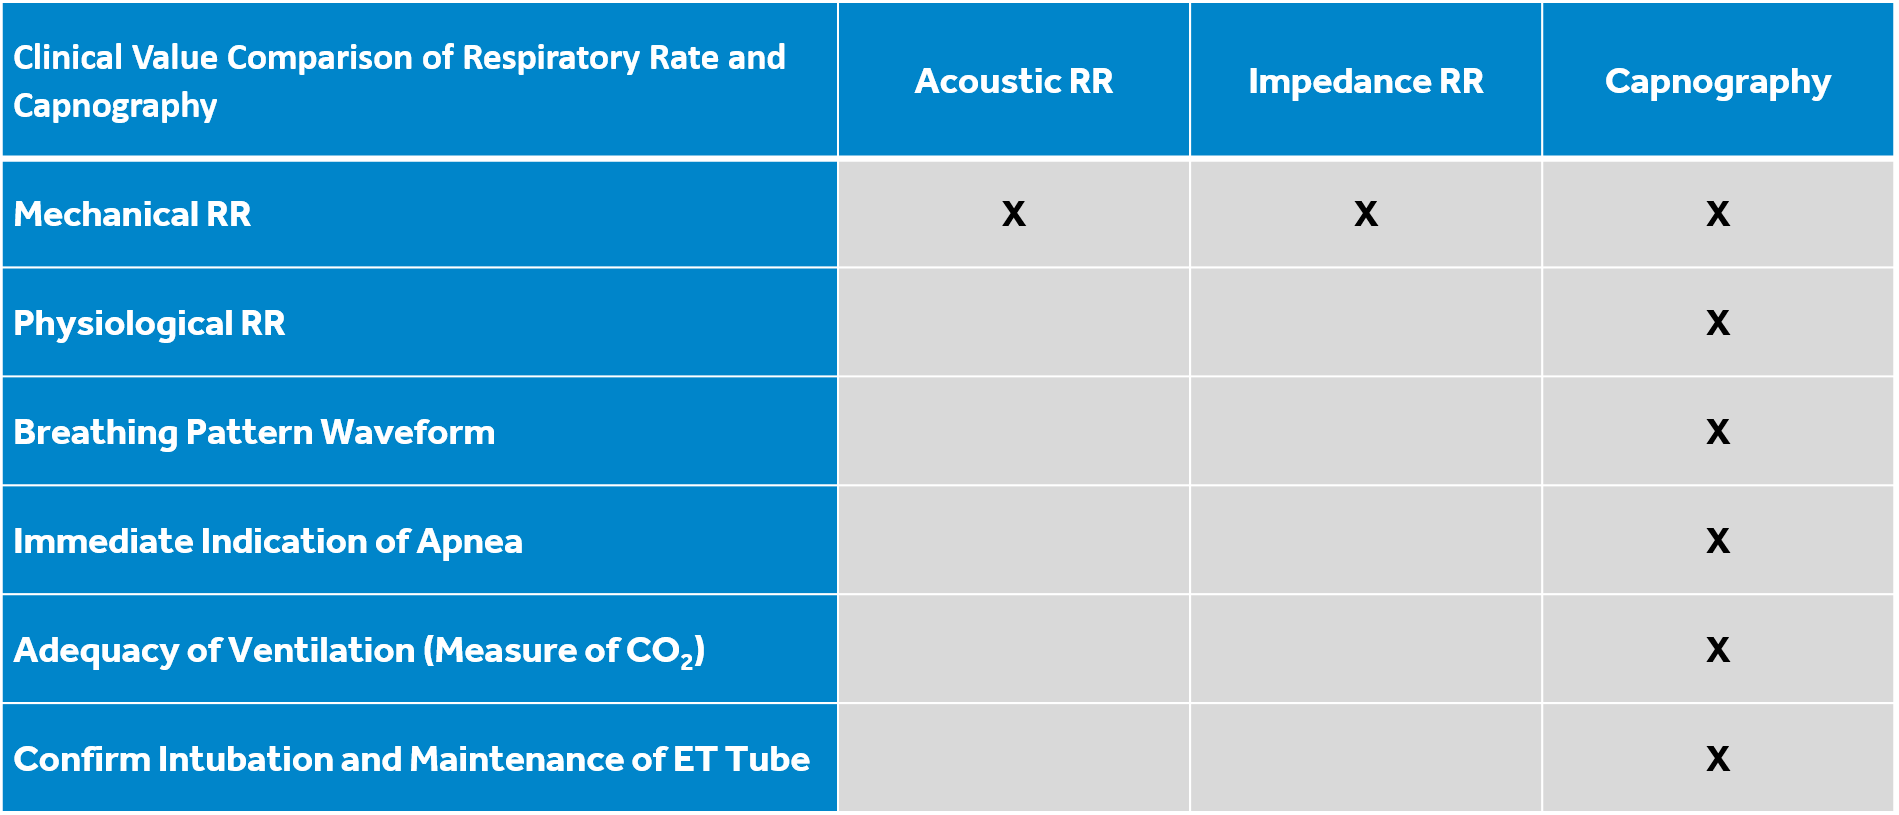 Clinical Value Comparison of Respiratory Rate and Capnography